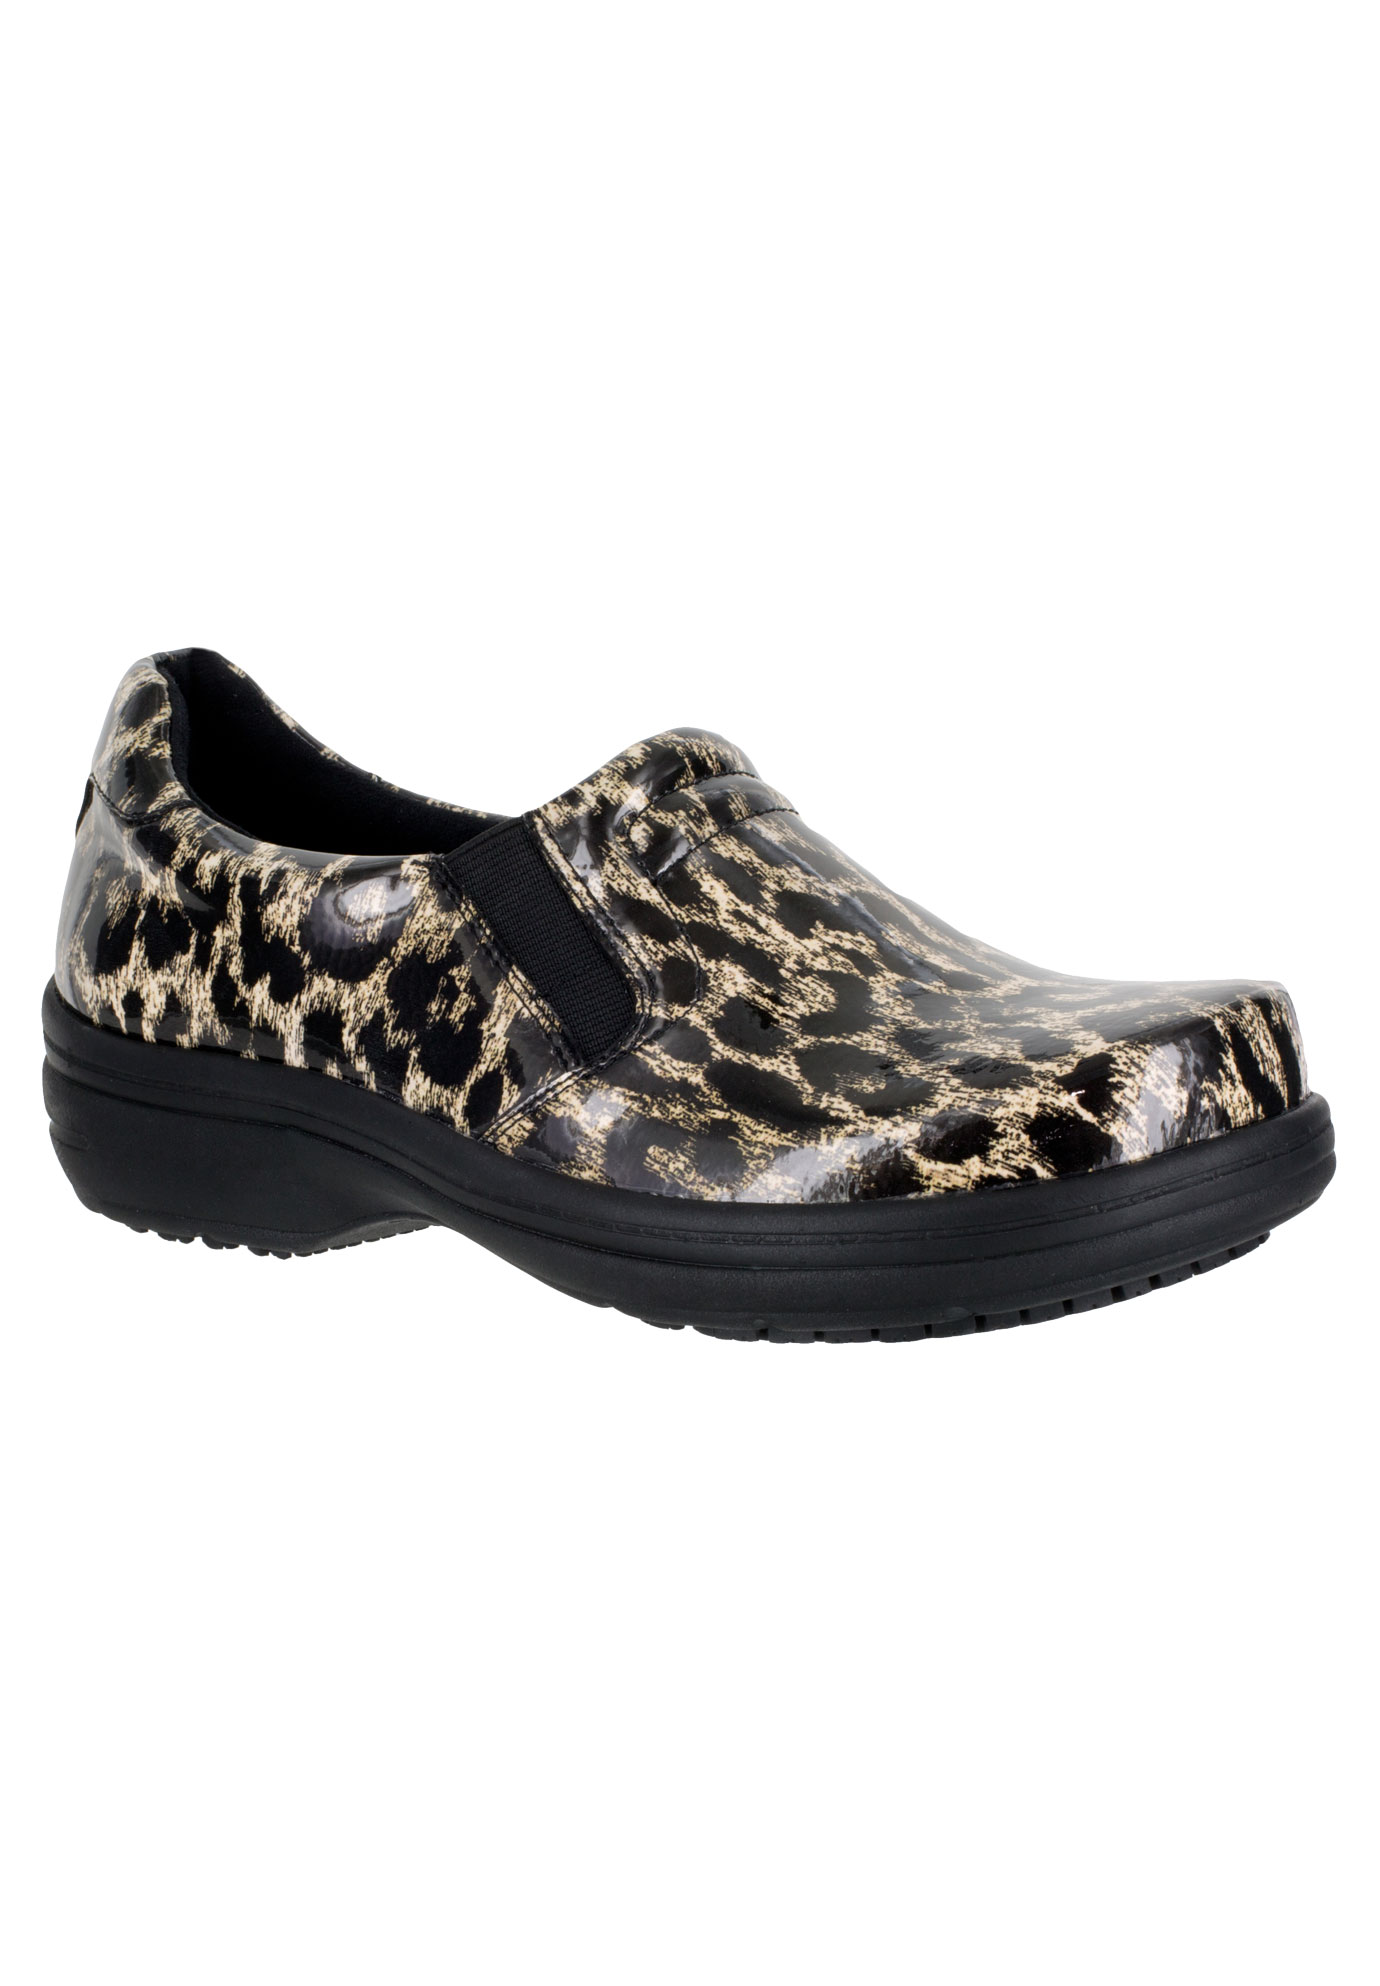 Bind Slip-Ons by Easy Works by Easy Street®, BEIGE LEOPARD, hi-res